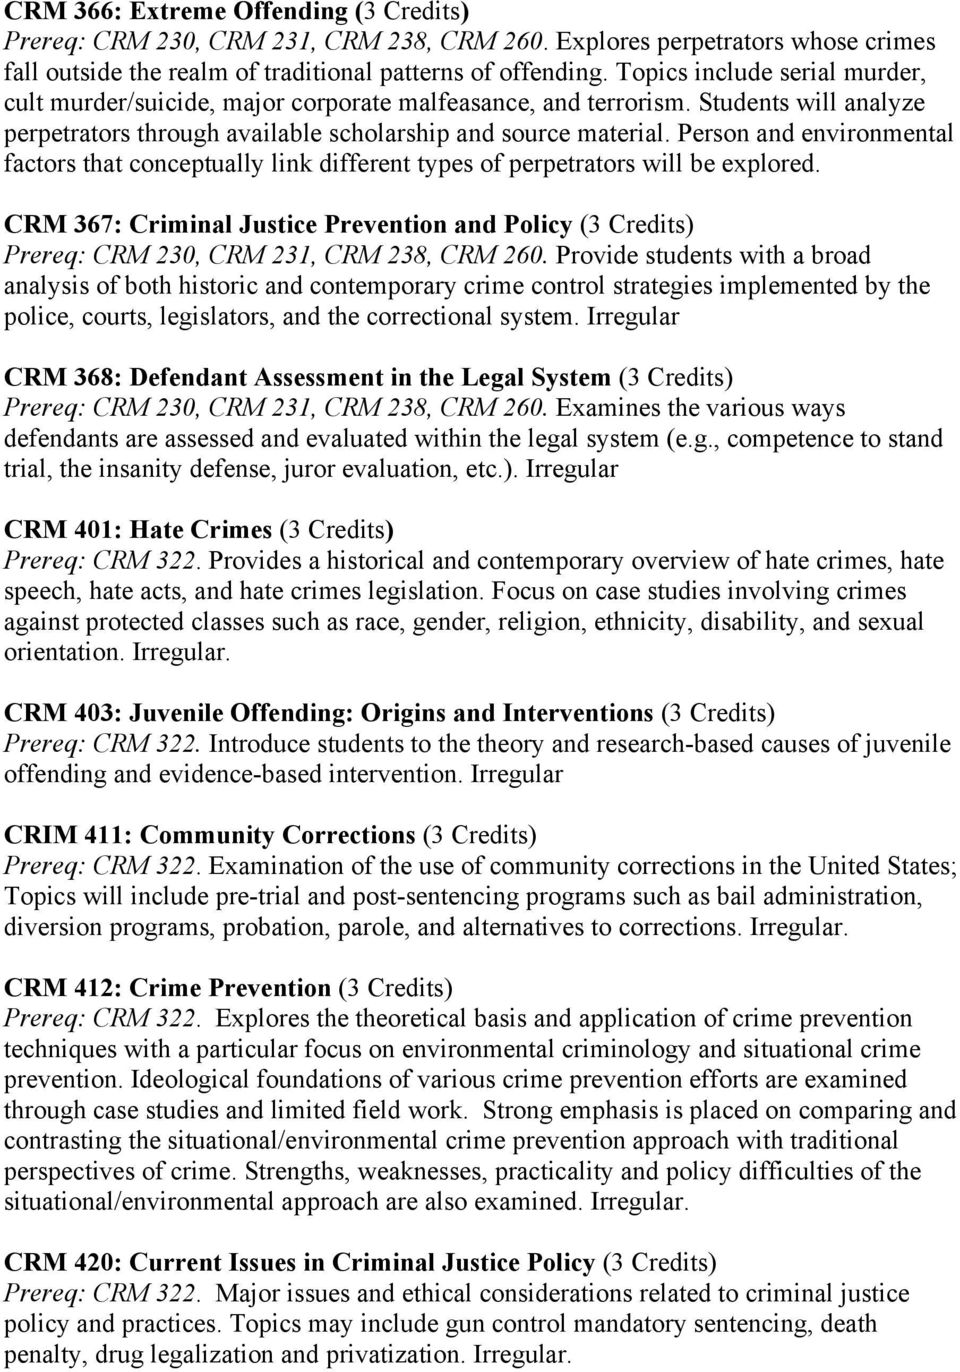 ethical issues criminal justice topics